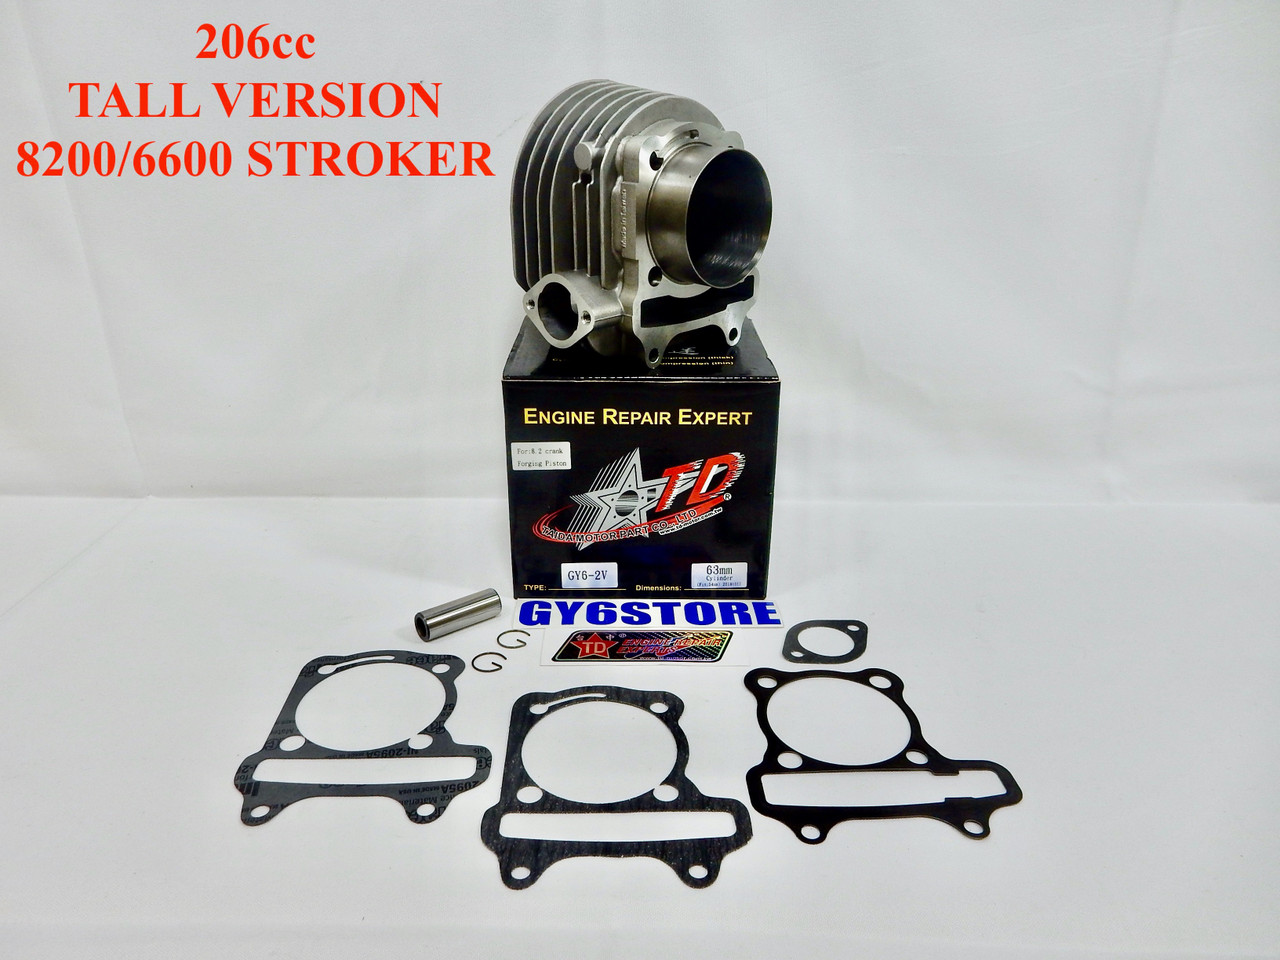 TAIDA 206cc (63mm) GY6 CYLINDER SET (54mm SPACING) TALL *8200/6600 STROKER* FORGED DOME PISTON